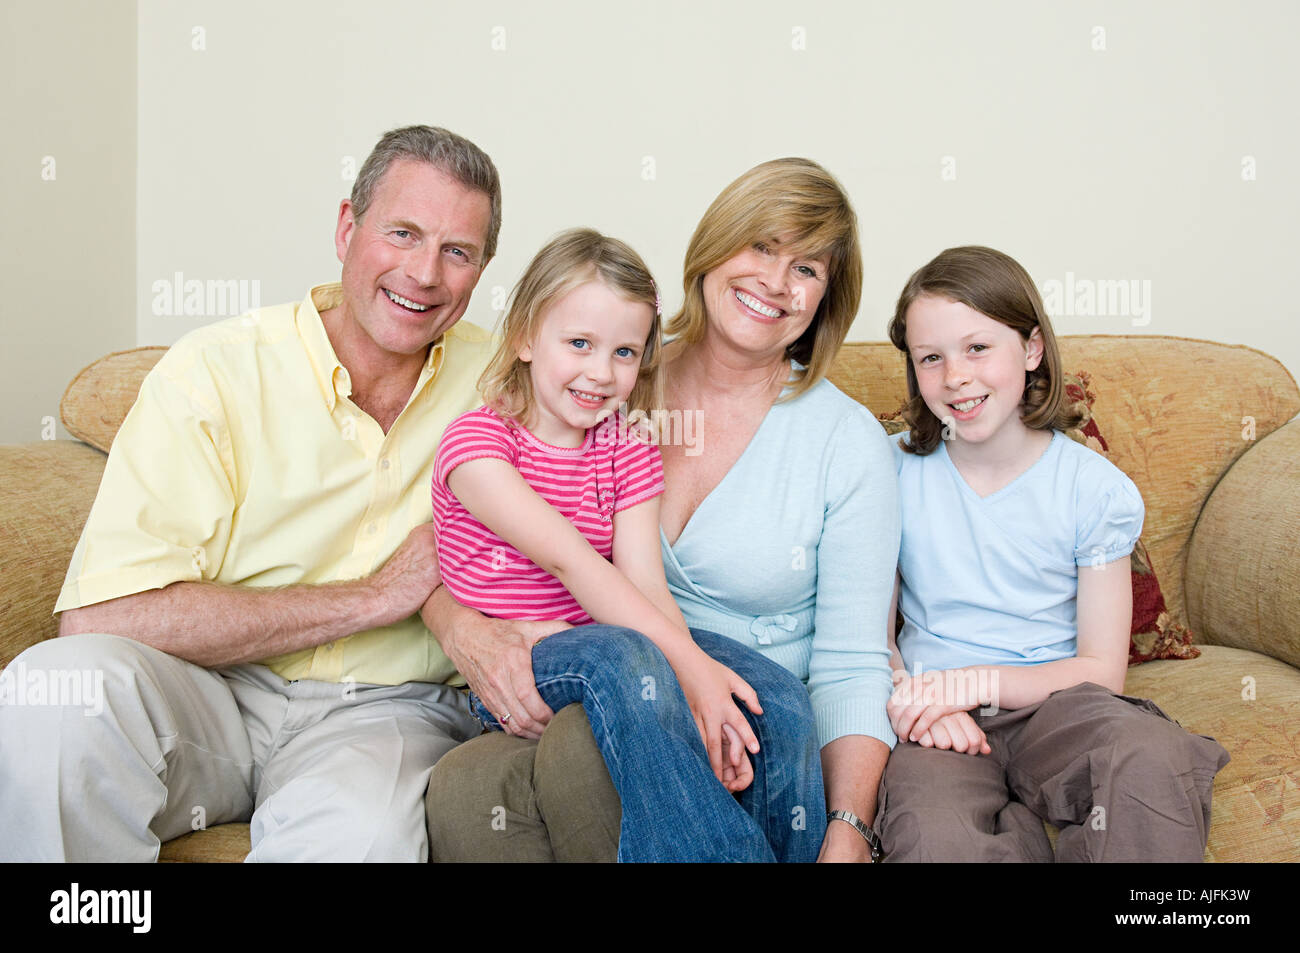 Family sitting on a sofa - Stock Image